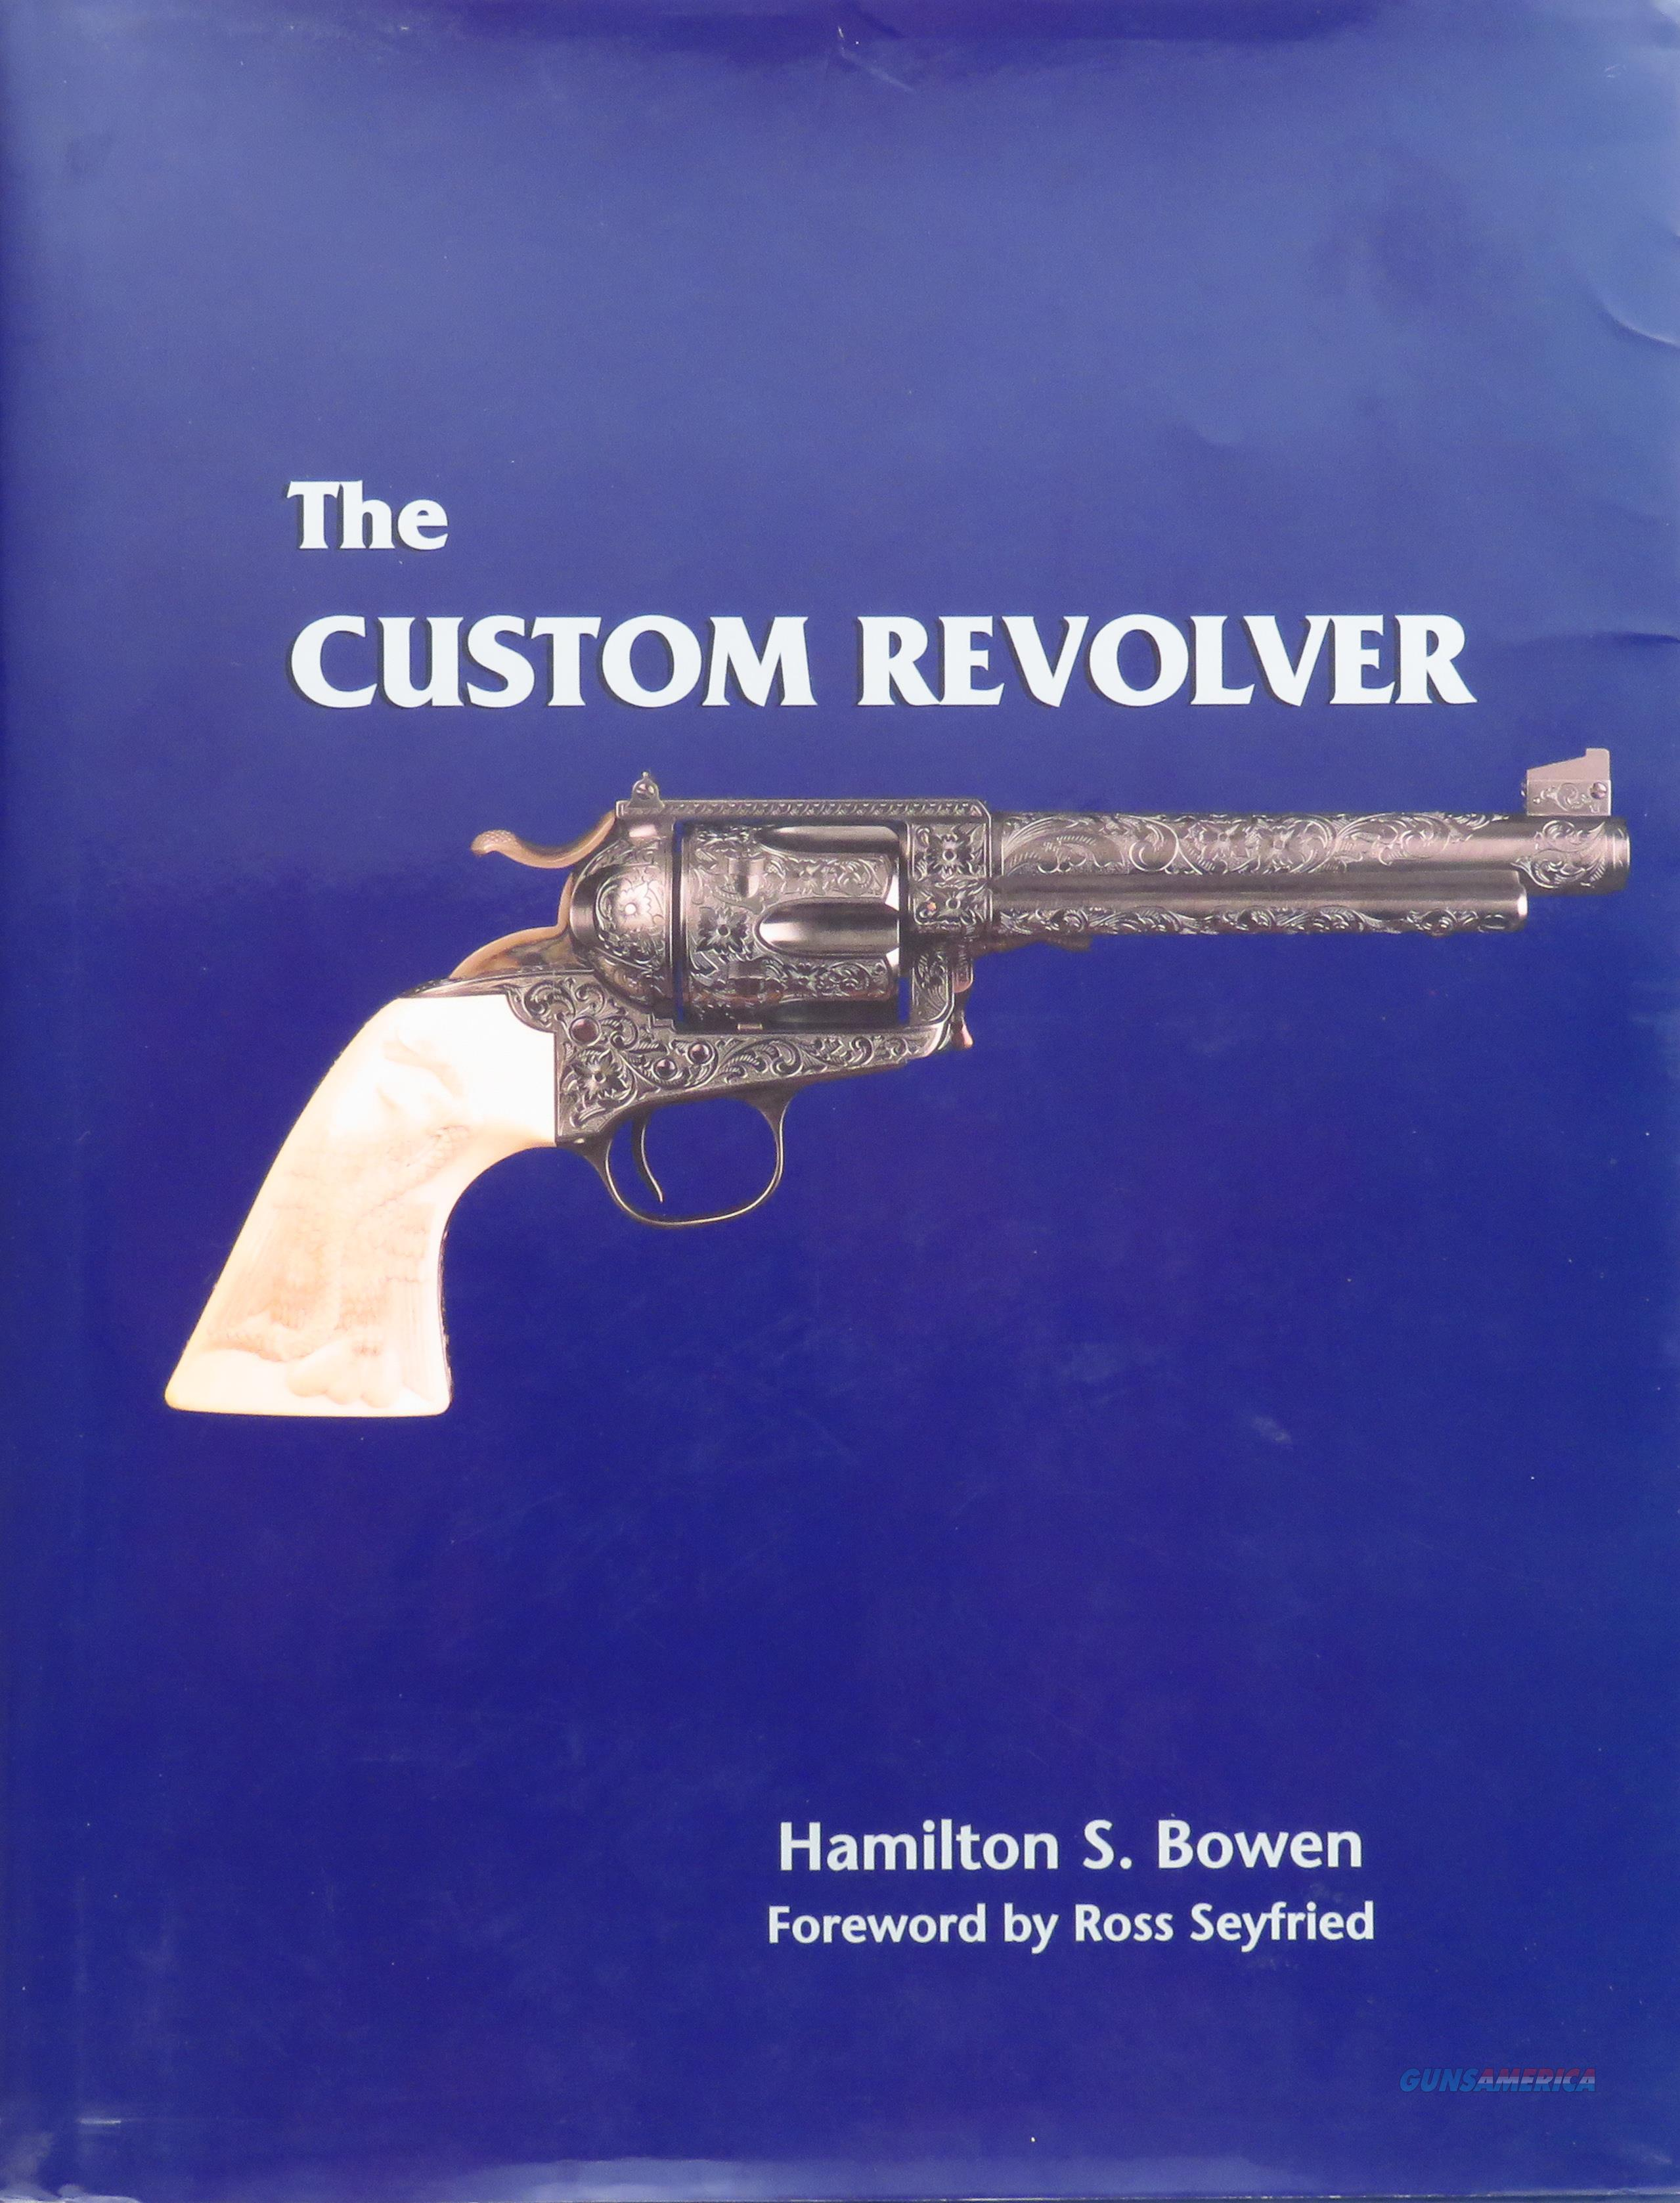 Hamilton Bowen, The Custom Revolver, signed, stated first edition, 2001  Non-Guns > Books & Magazines